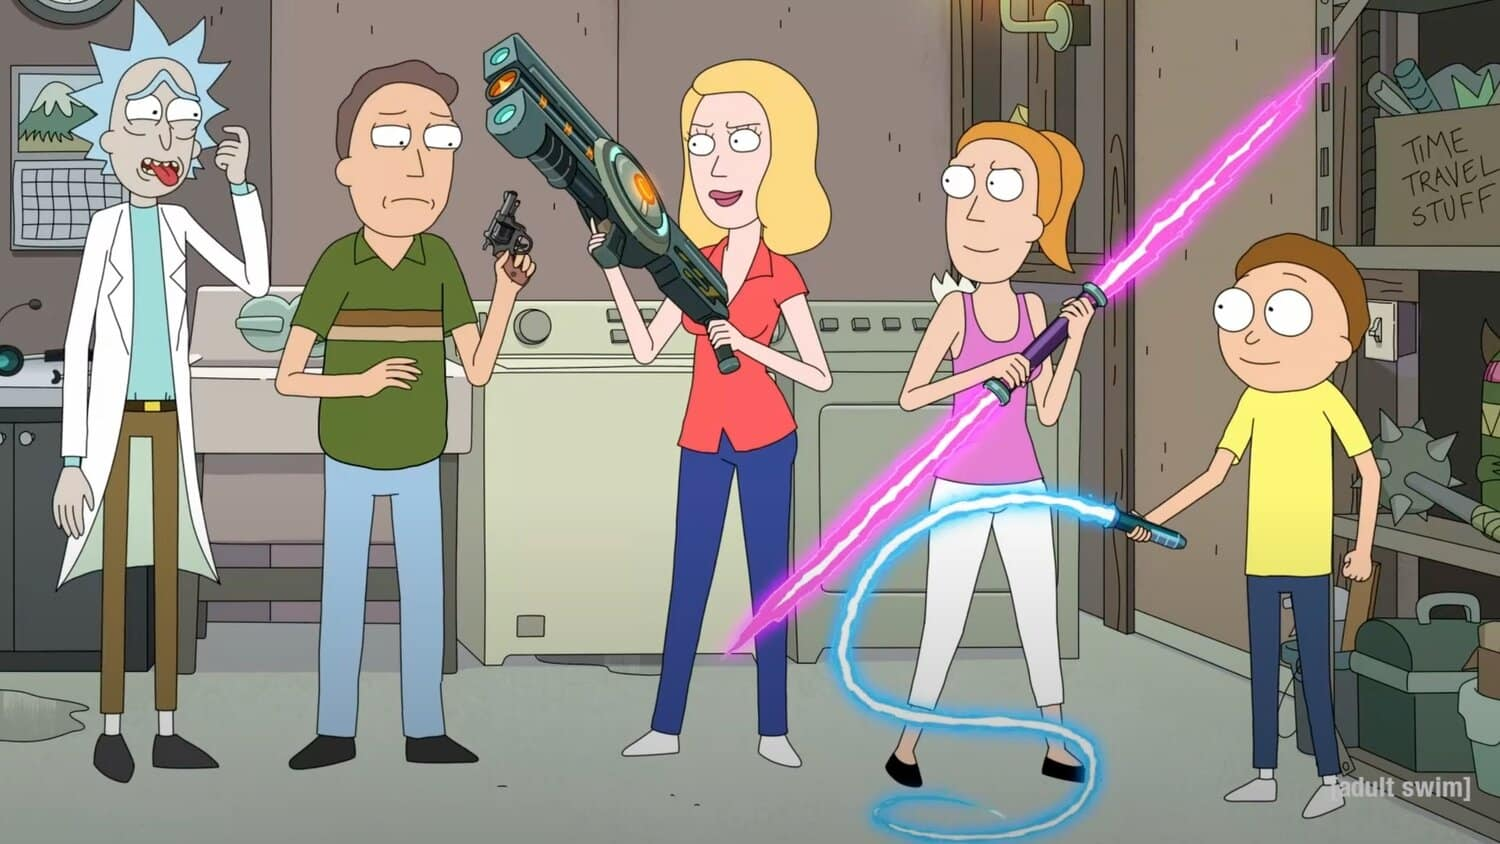 5. séria rick a morty trailer